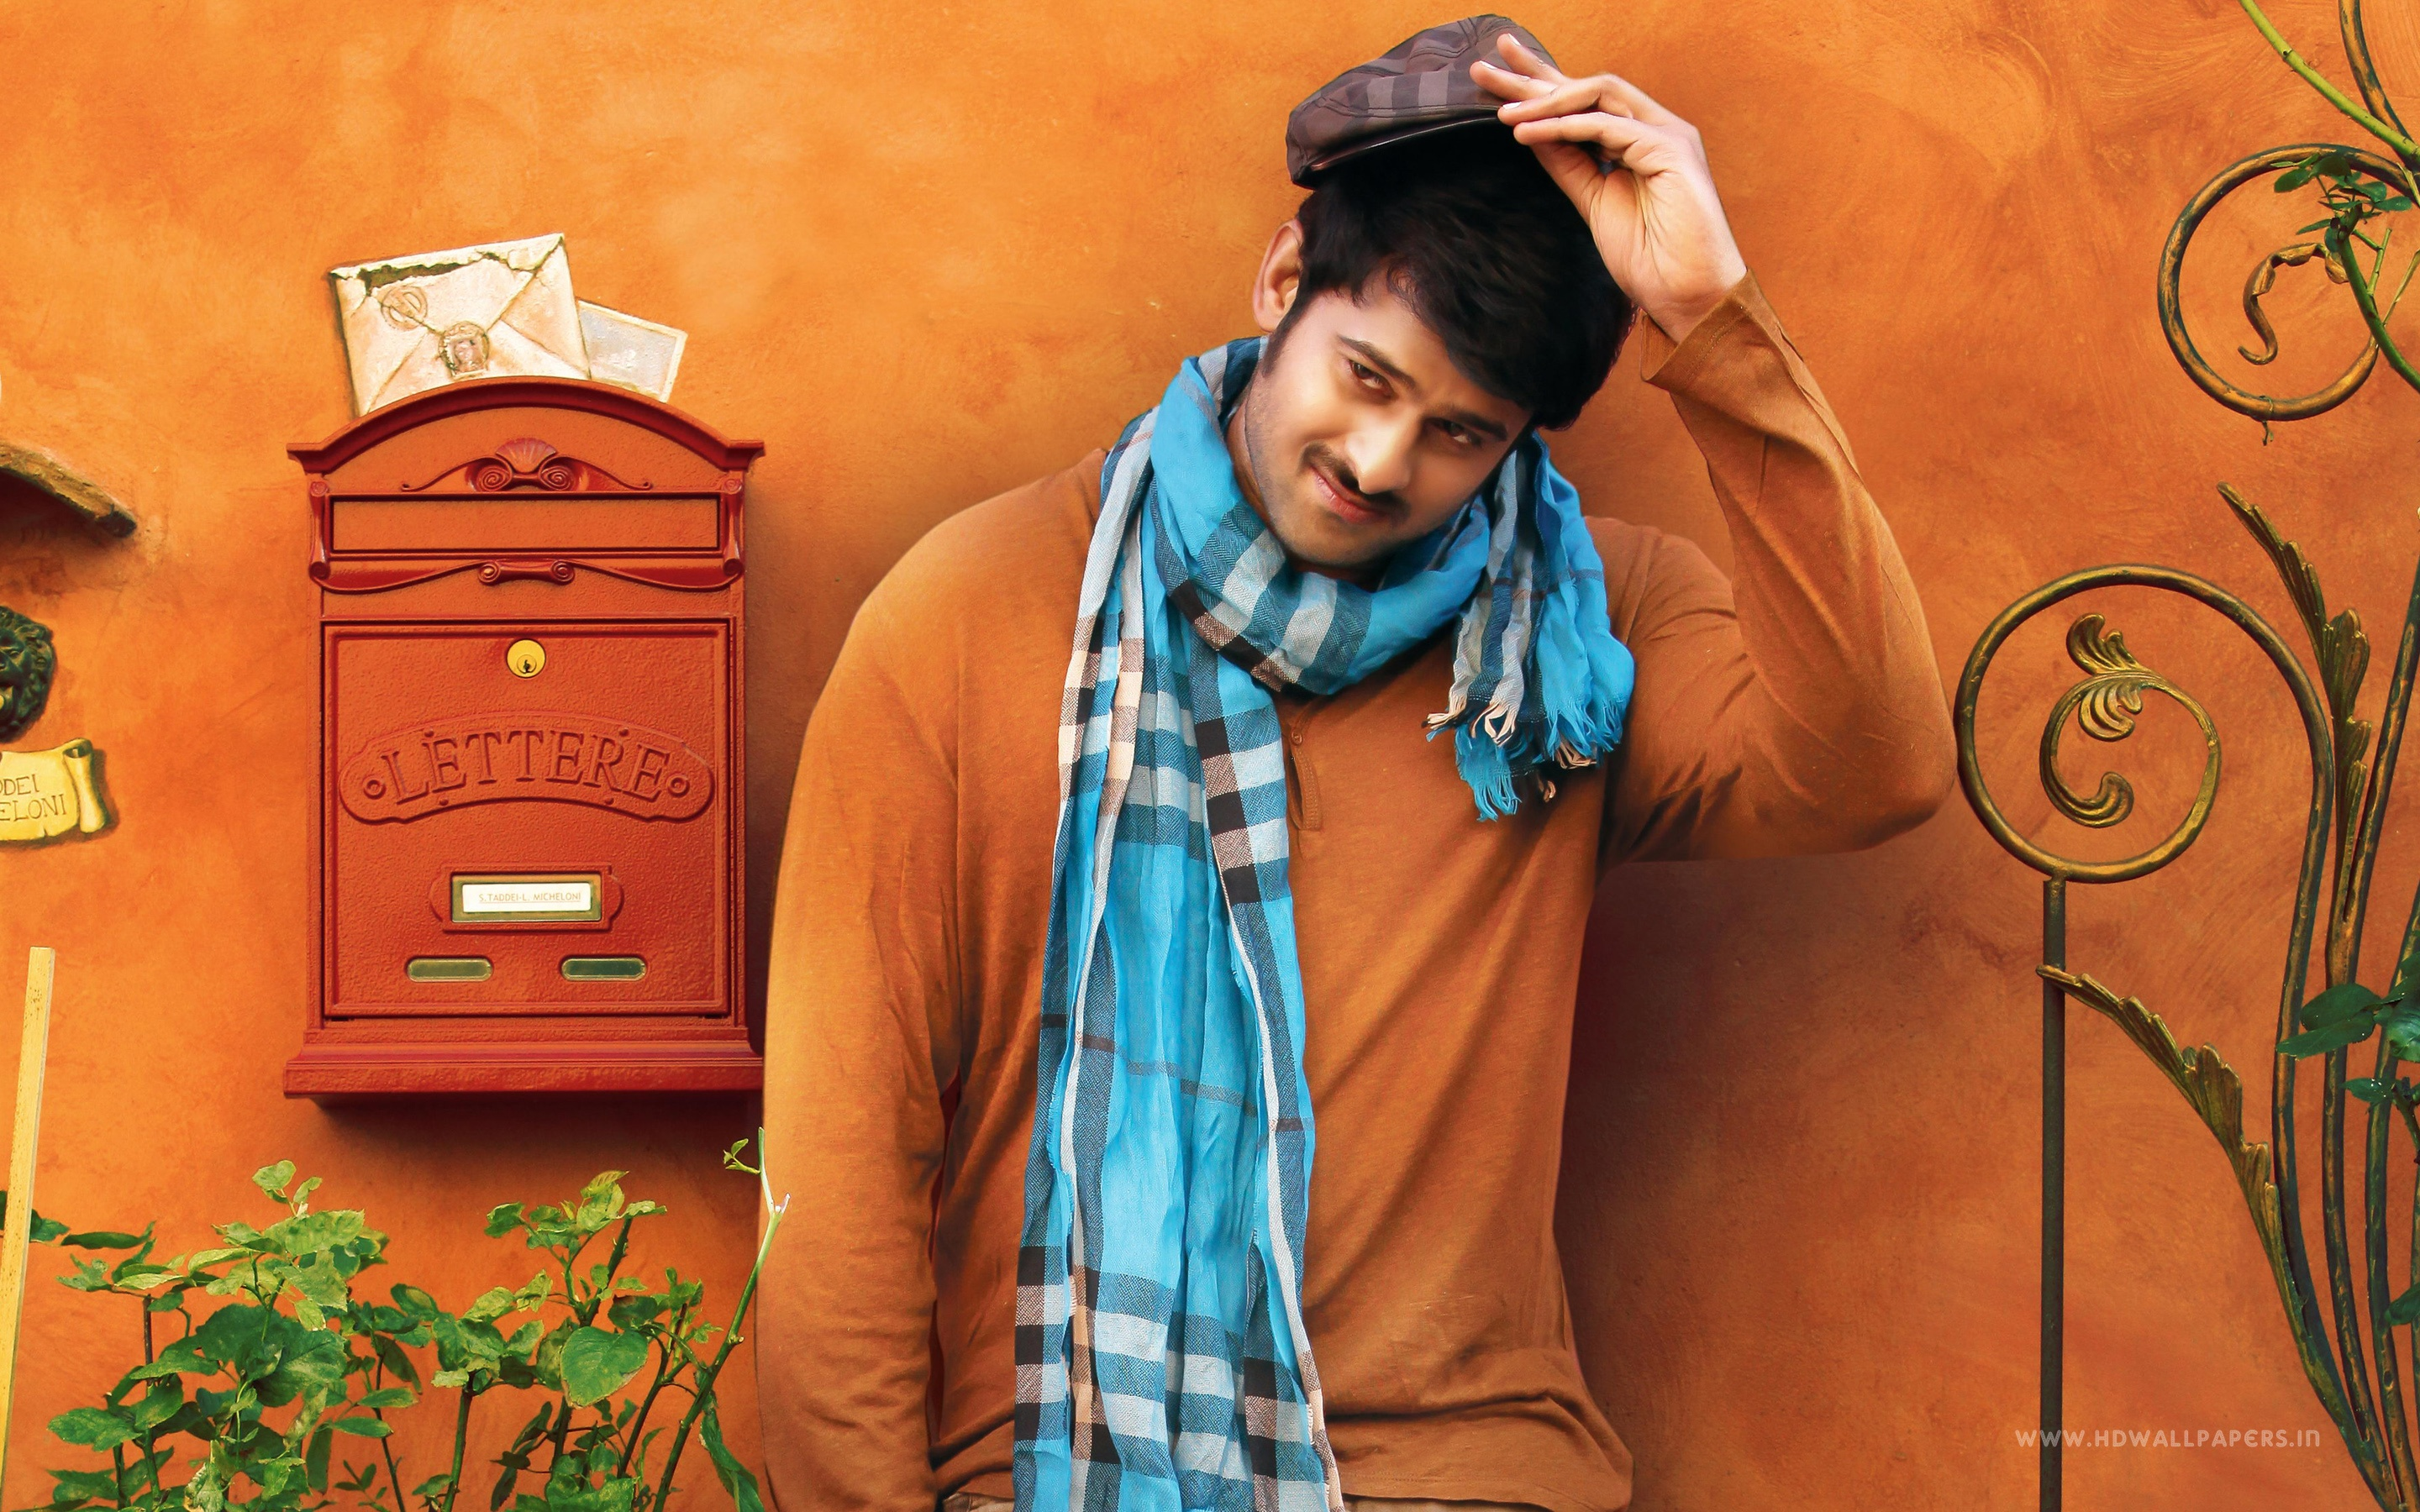 prabhas wallpapers in jpg format for free download